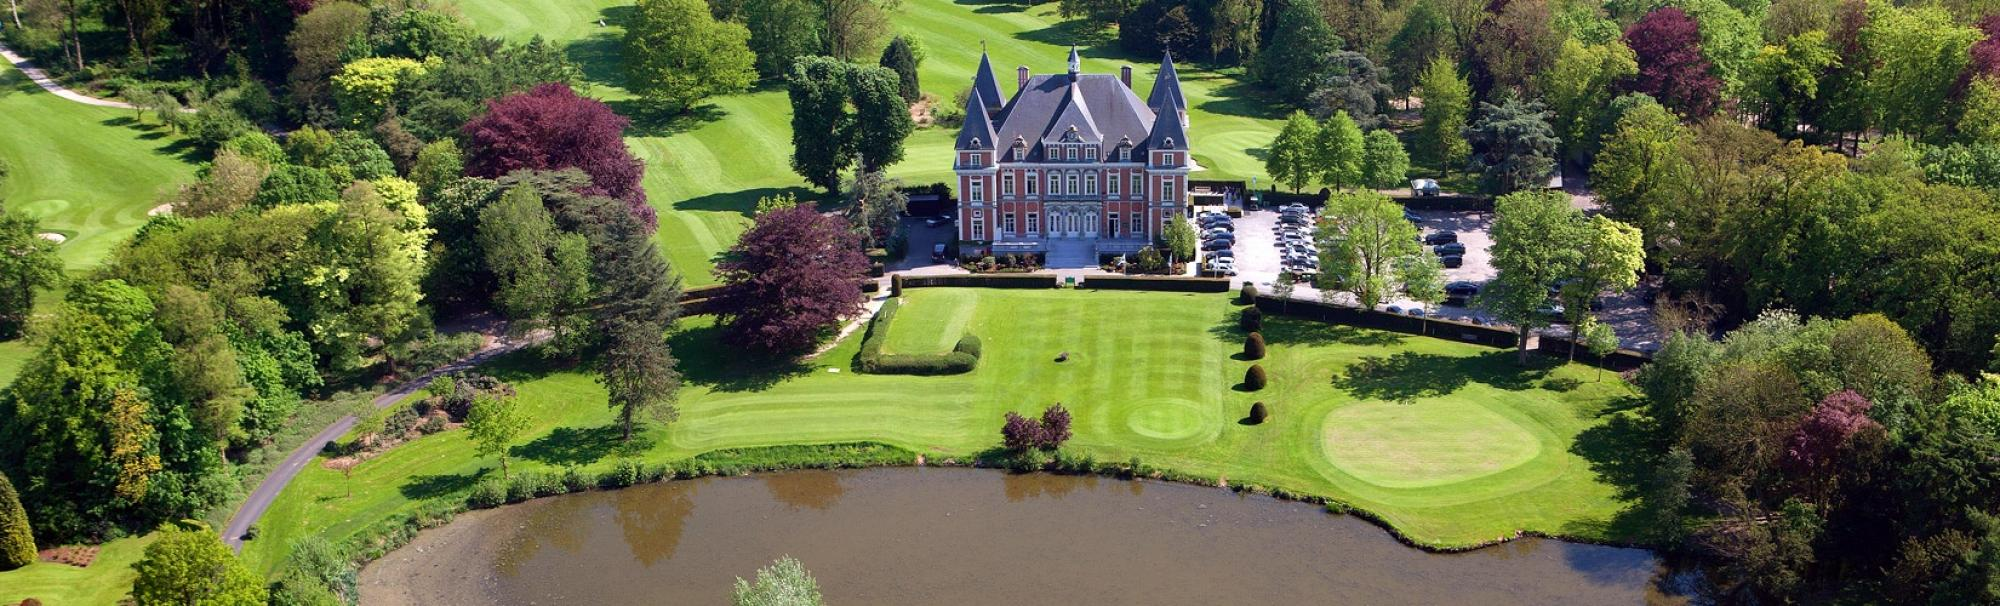 All The Golf & Countryclub Oudenaarde's impressive golf course within brilliant Bruges & Ypres.